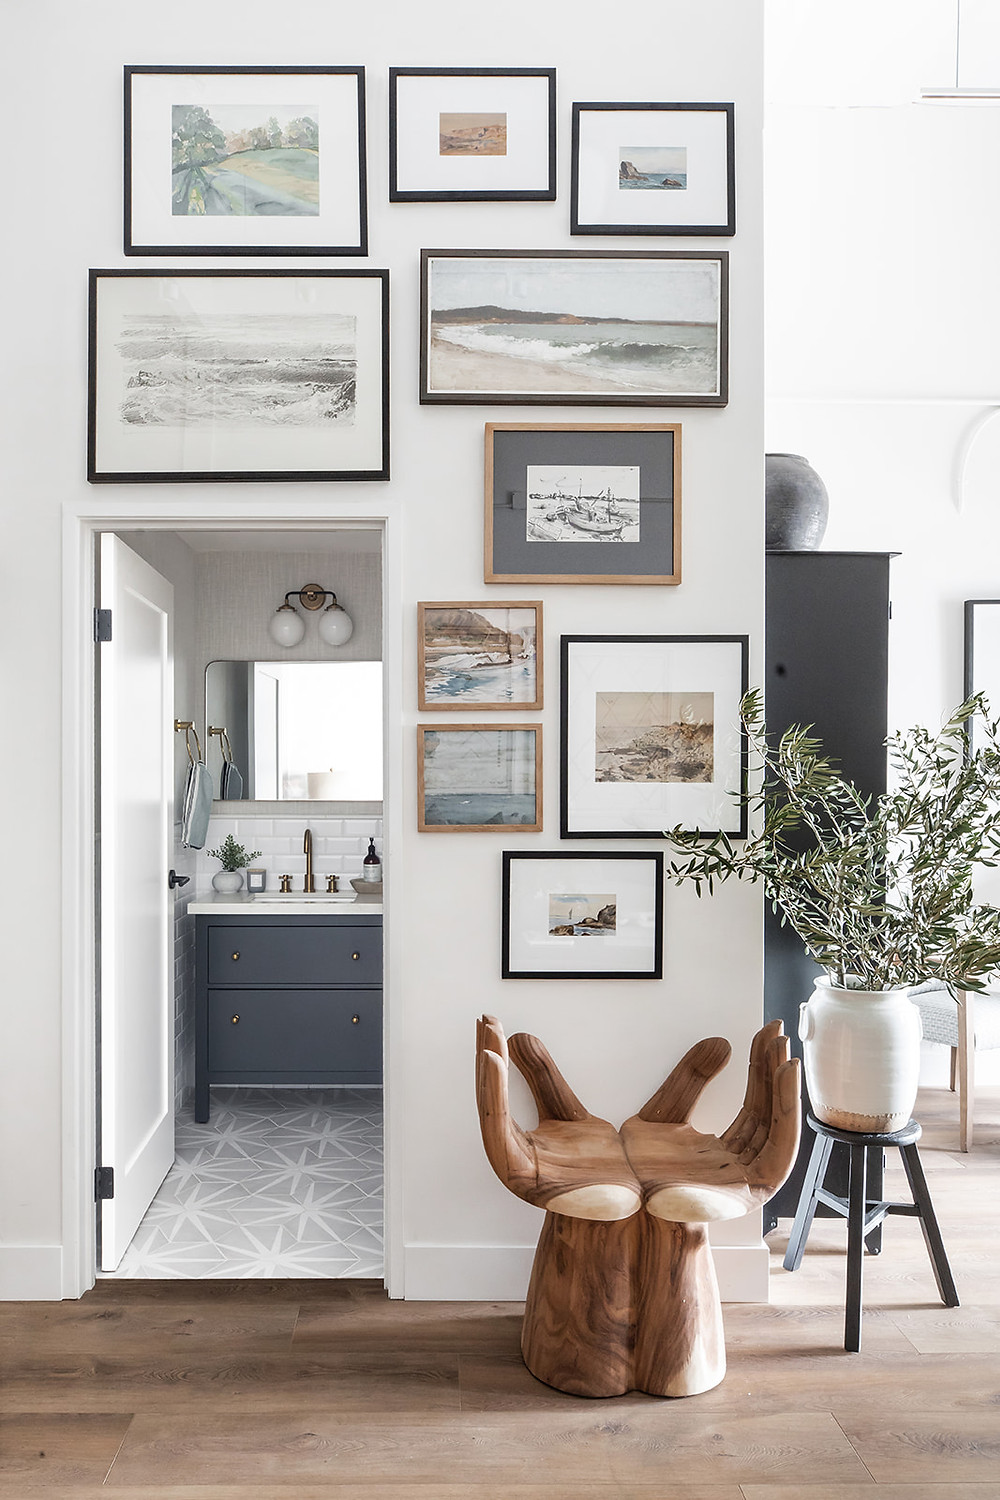 gallery of seascapes in studio at Lindsey Brooke Design